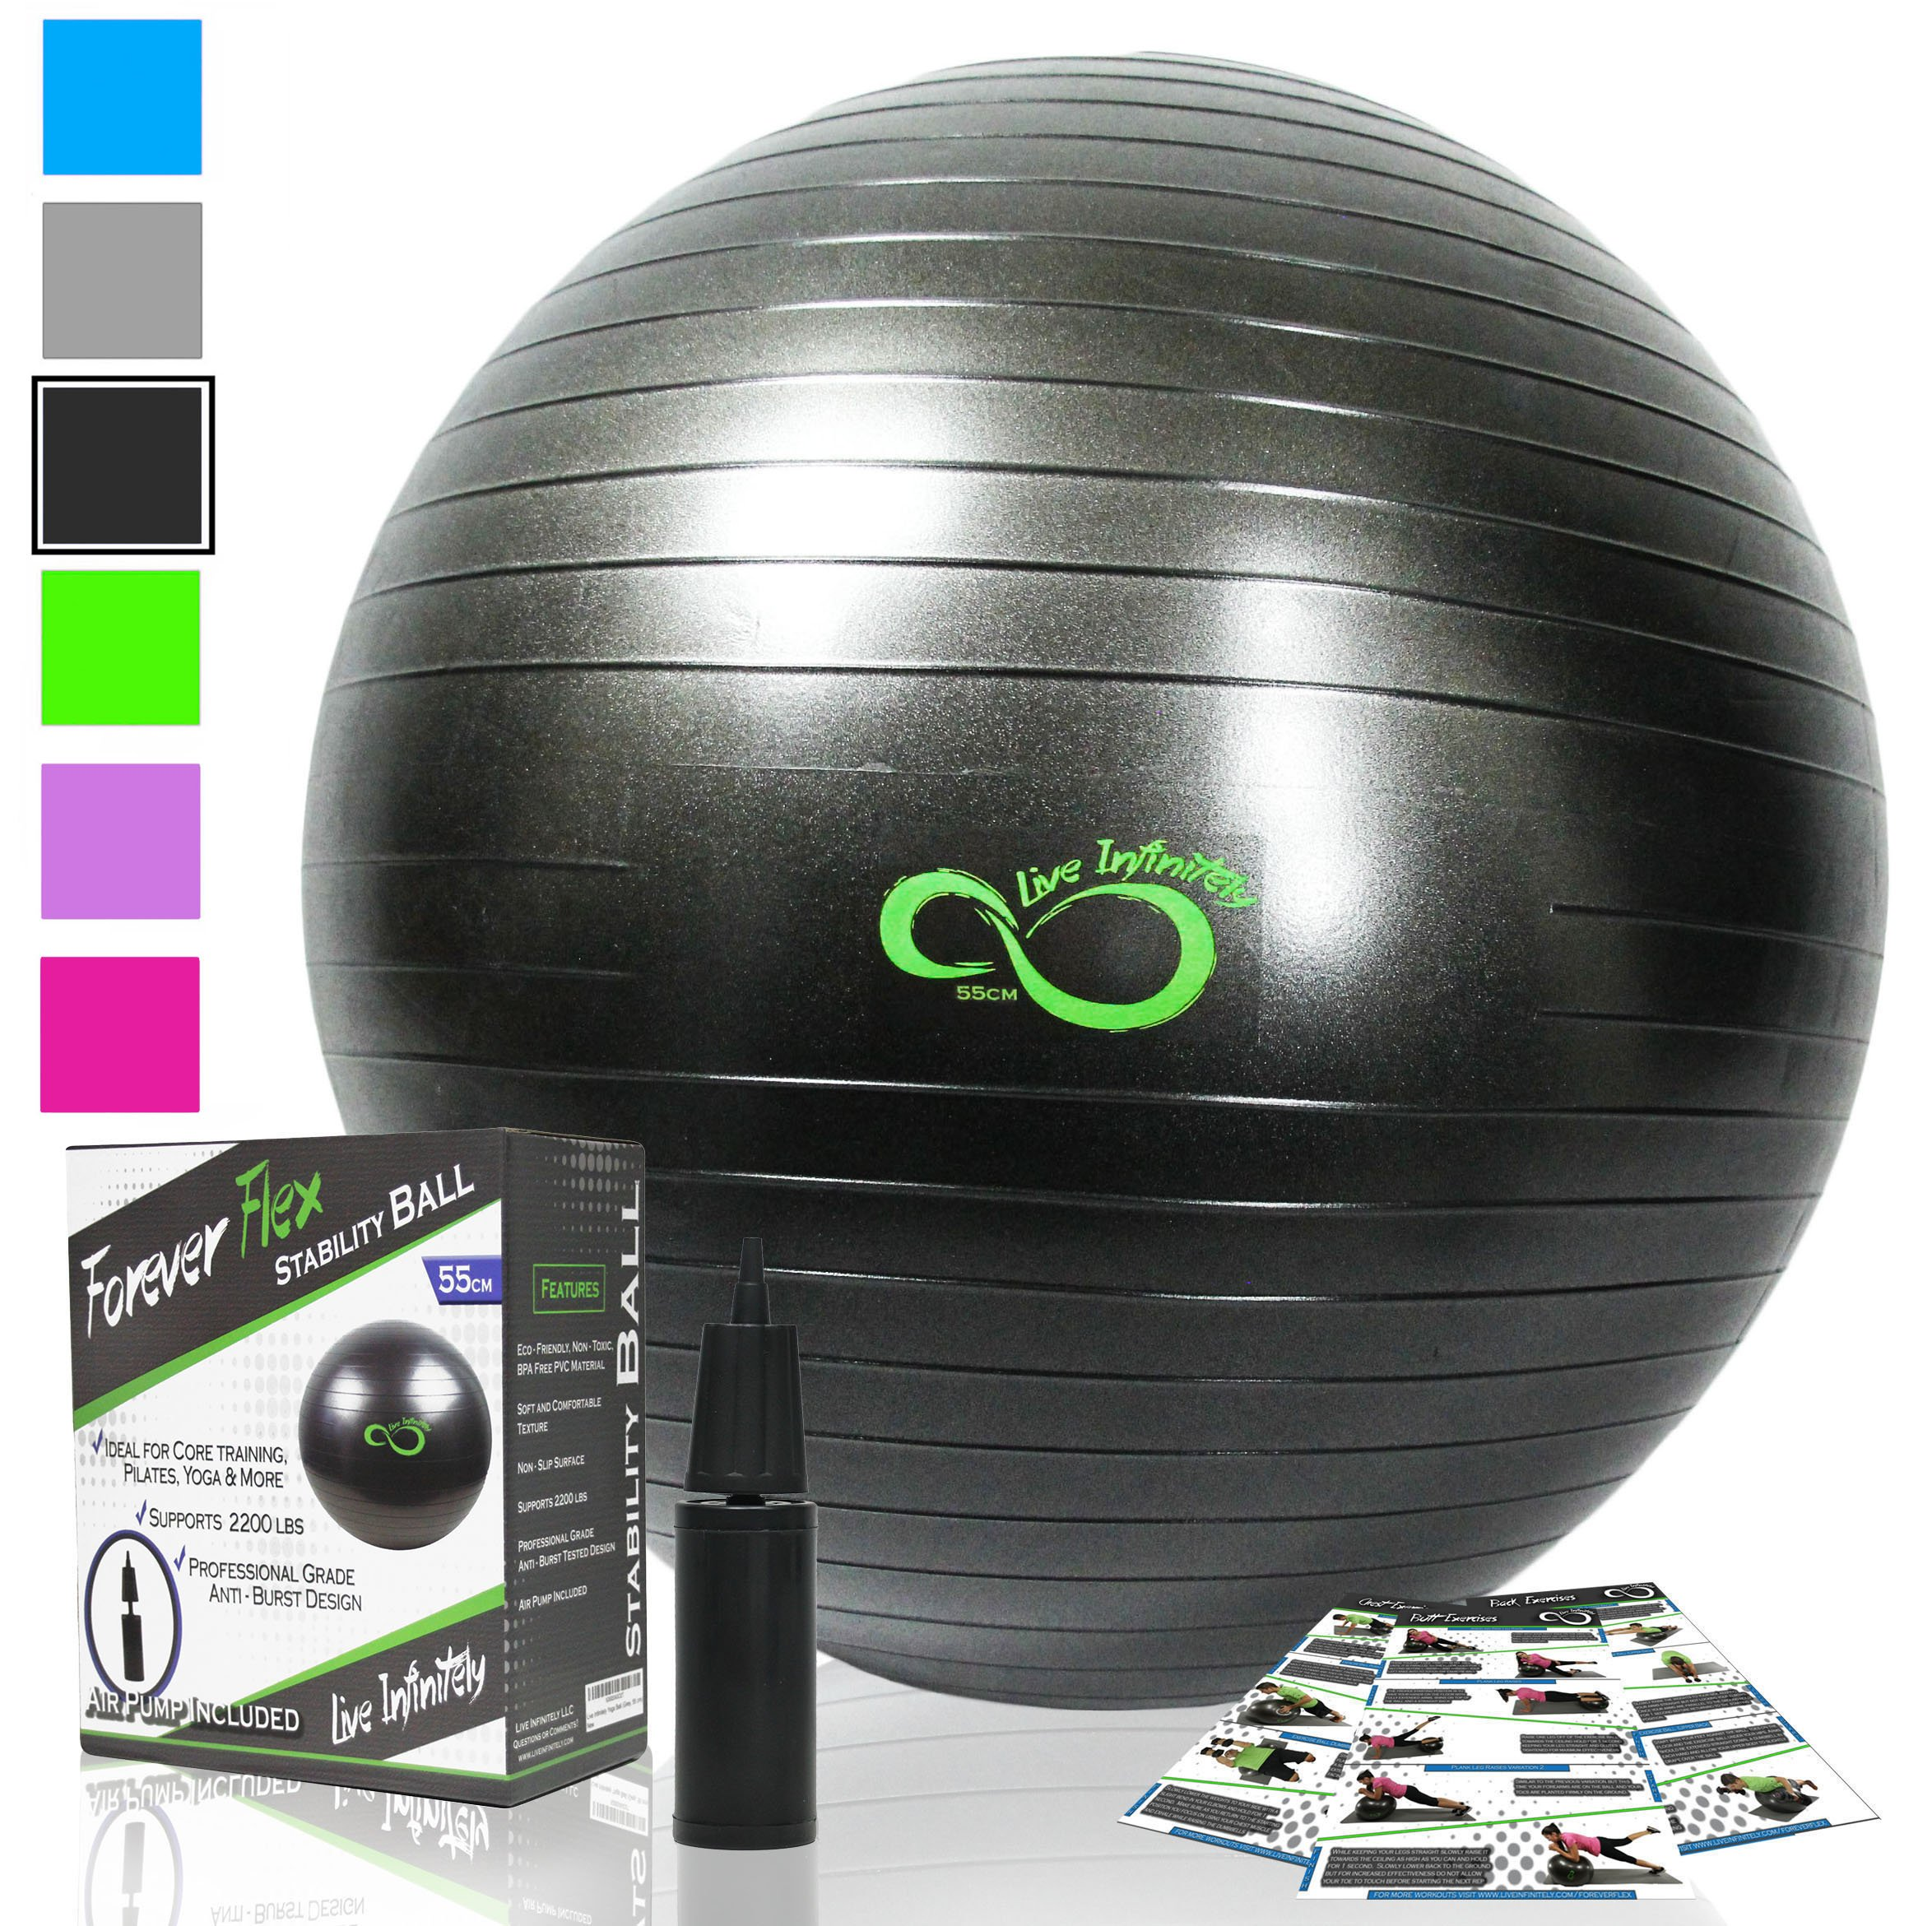 Exercise Ball -Professional Grade Exercise Equipment Anti Burst Tested with Hand Pump- Supports 2200lbs- Includes Workout Guide Access- 55cm/65cm/75cm/85cm Balance Balls (Dark Grey, 65 cm)